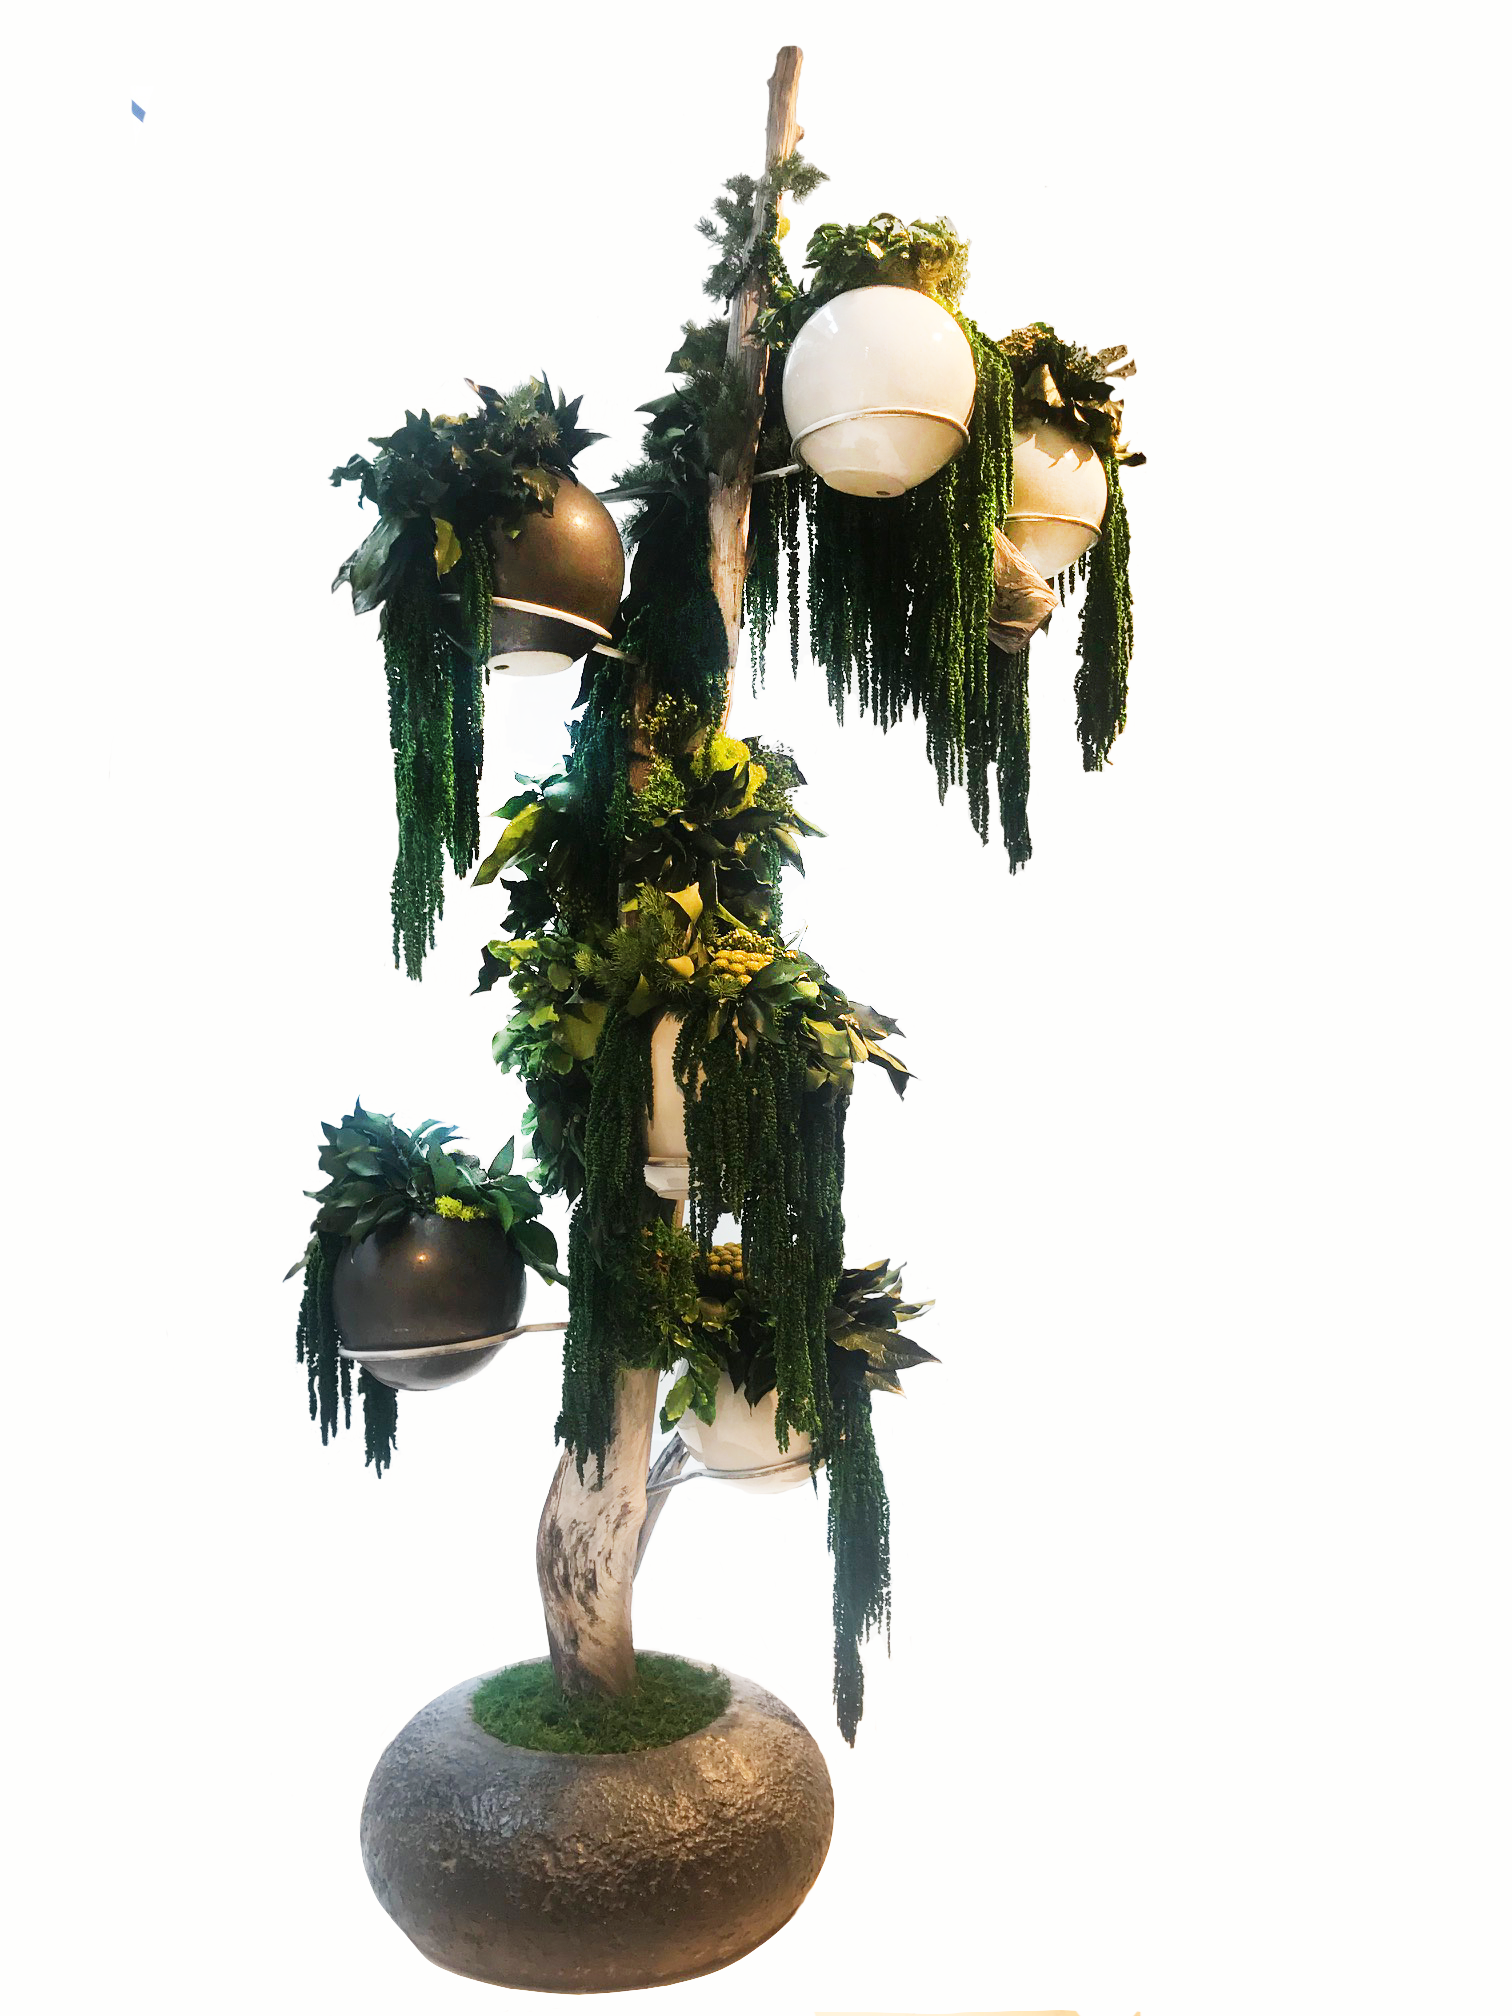 FB.Standing Forest Flowerbox AFA Gallery Primary Contemporary New York Wonderlust Soho sustainable plant sculpture growing art living art.png